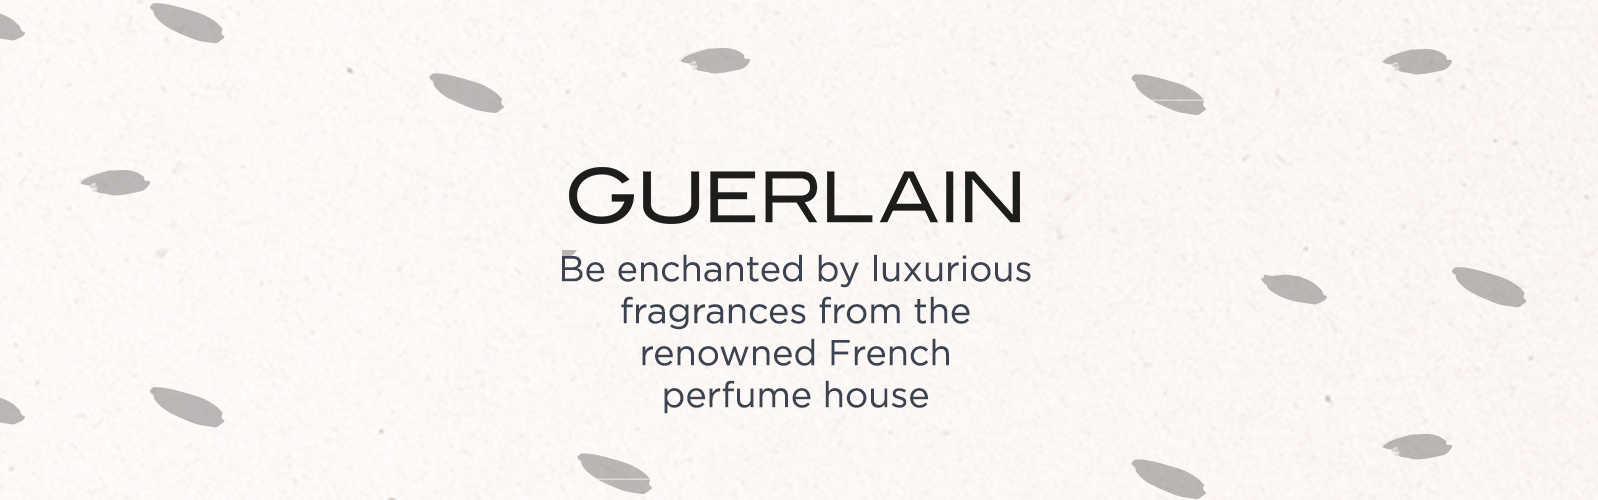 Guerlain. Be enchanted by luxurious fragrances from the renowned French perfume house